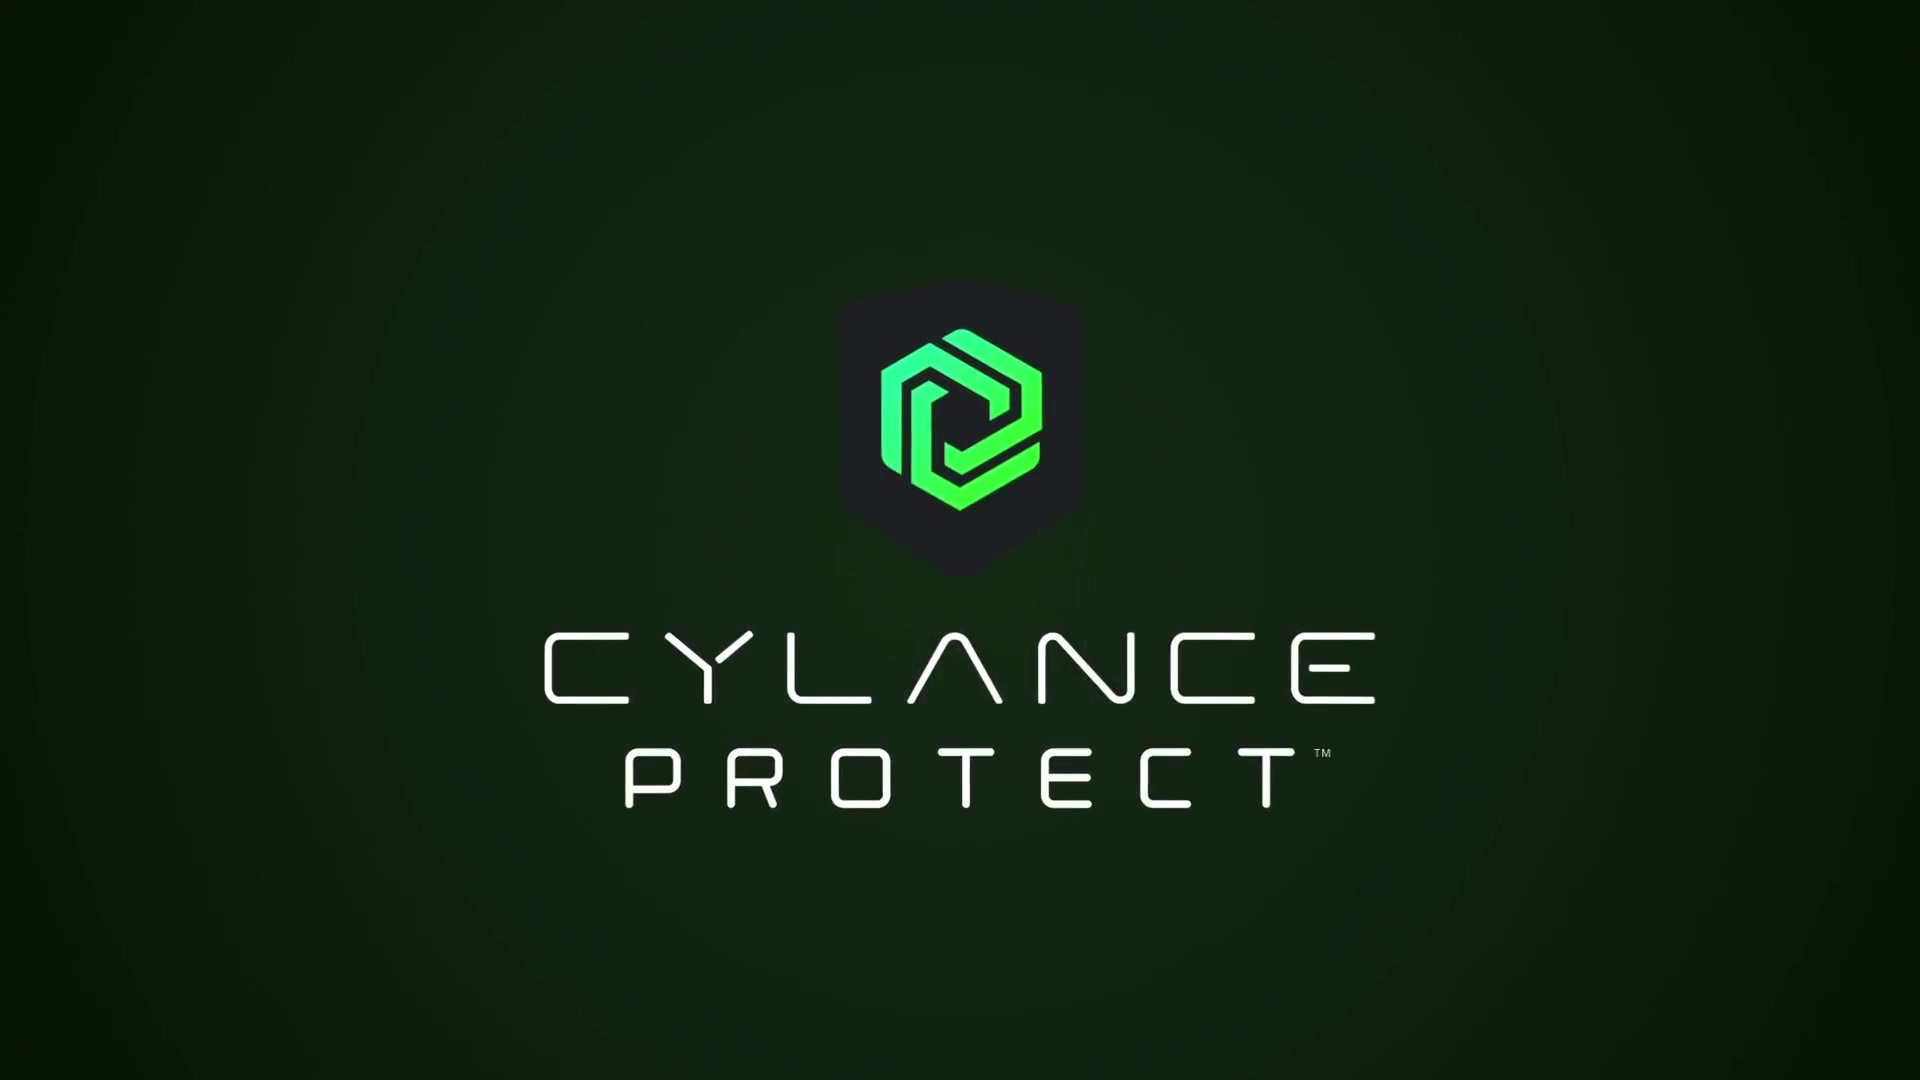 CylancePROTECT for Powerful Prevention